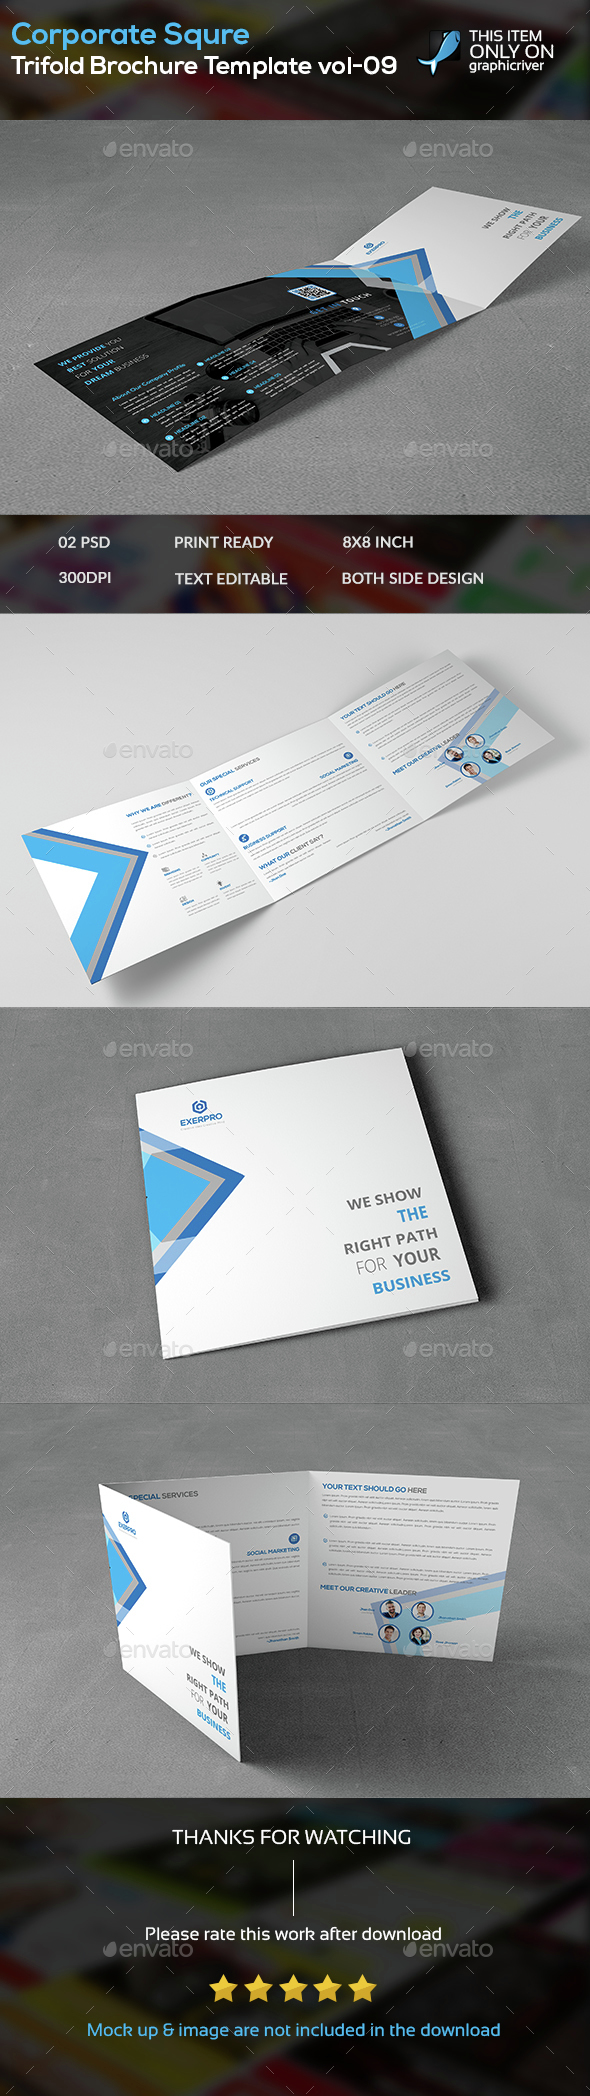 Corporate Squre Trifold Brochure Template -09 - Brochures Print Templates